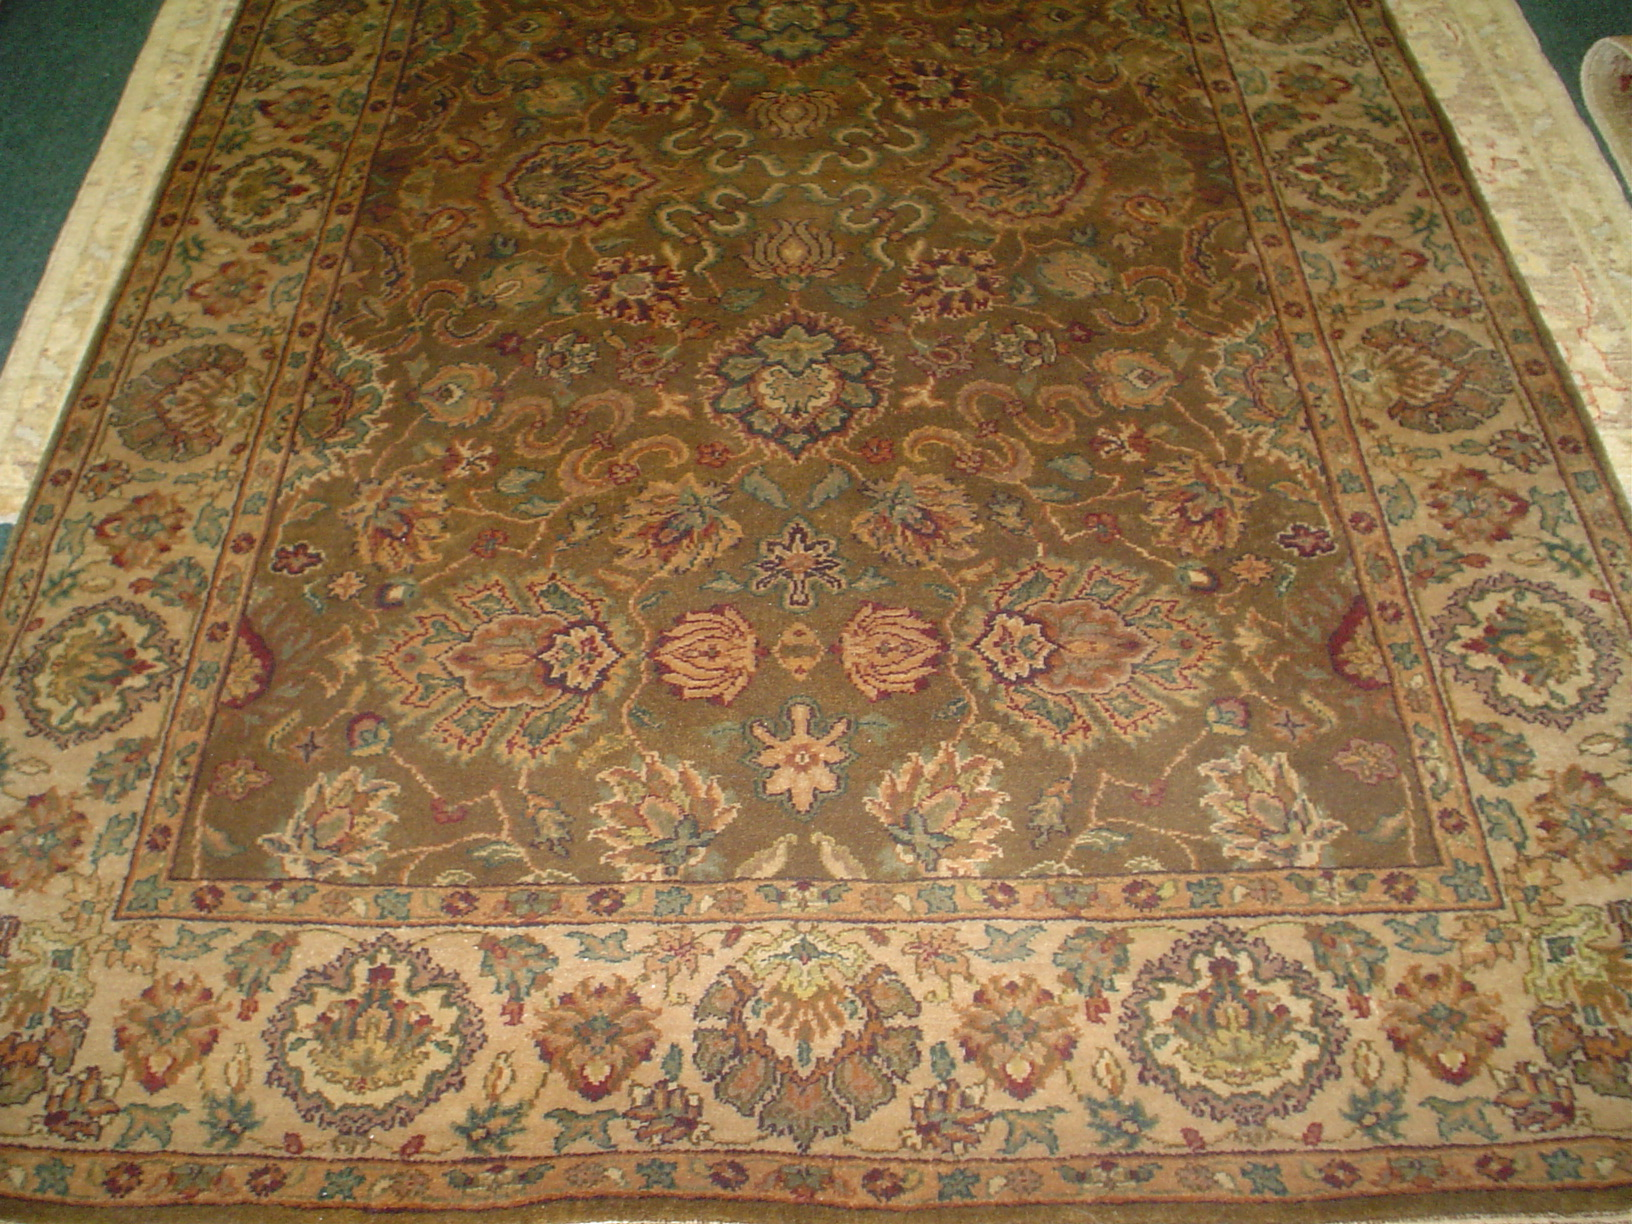 #2) 4' x 6' Agra, India. Soft muted colors in a detailed floral design.